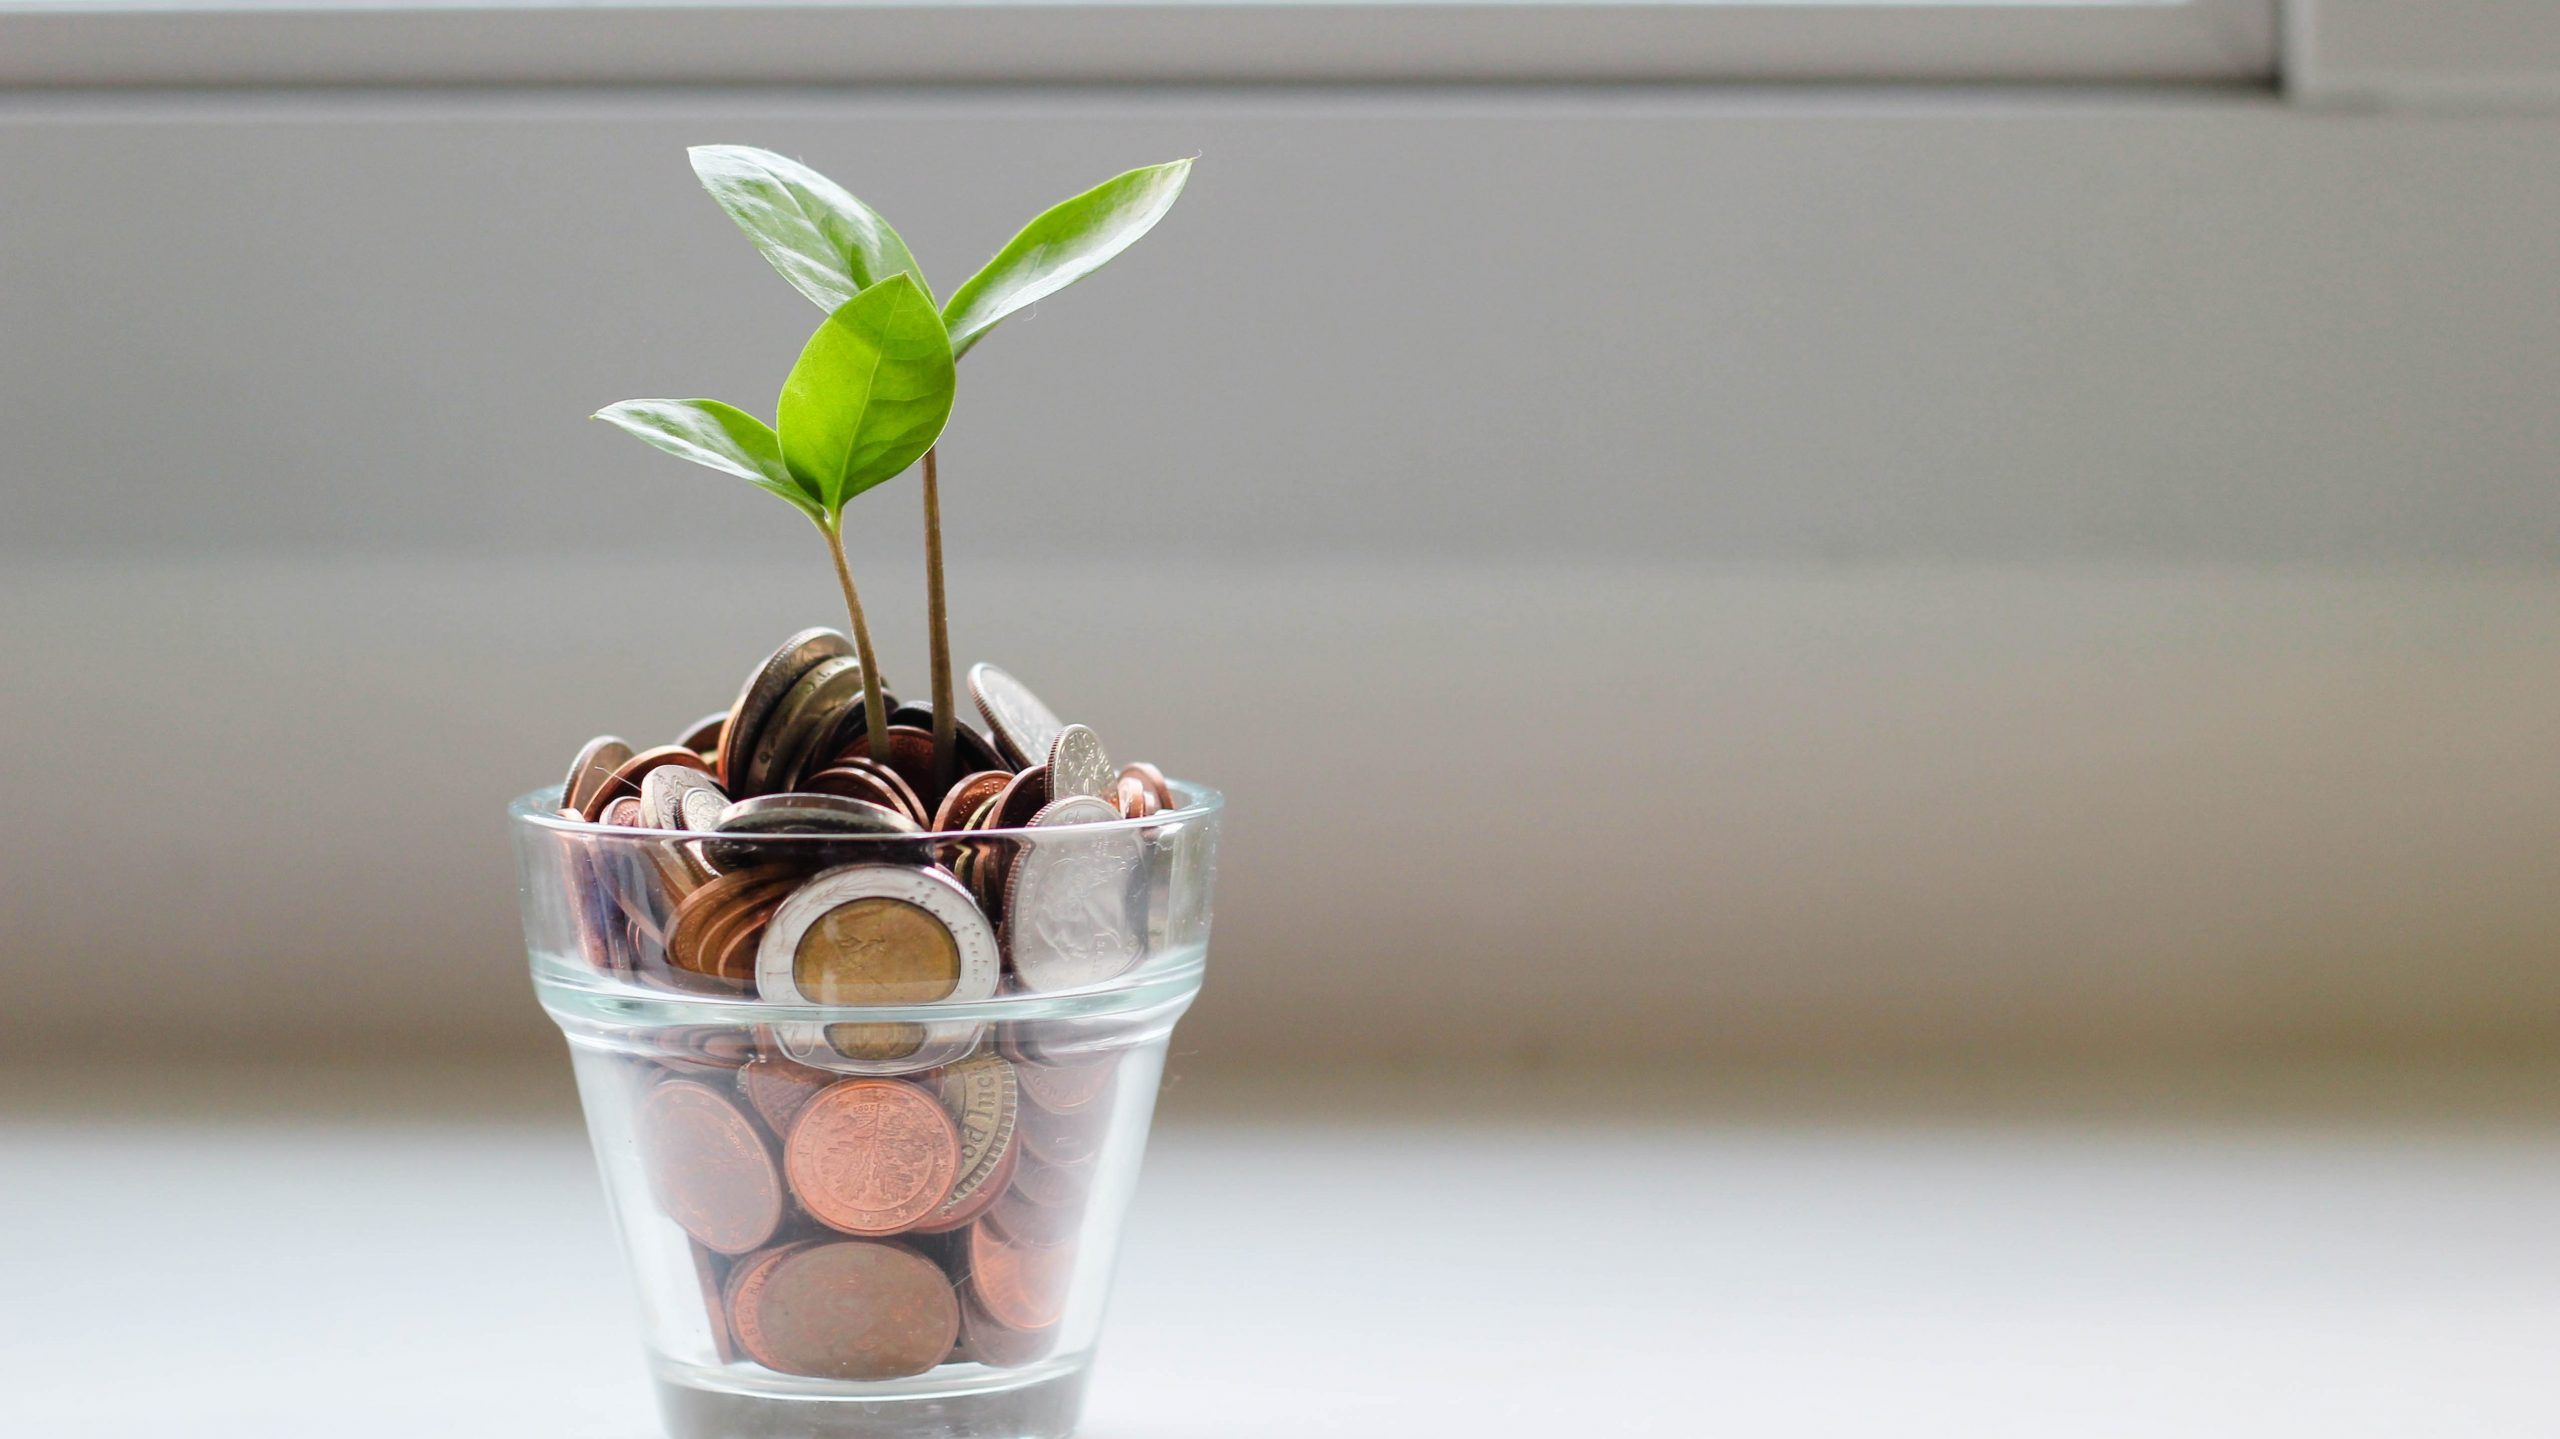 picture of a glass with coins in and a shoot growing out of it